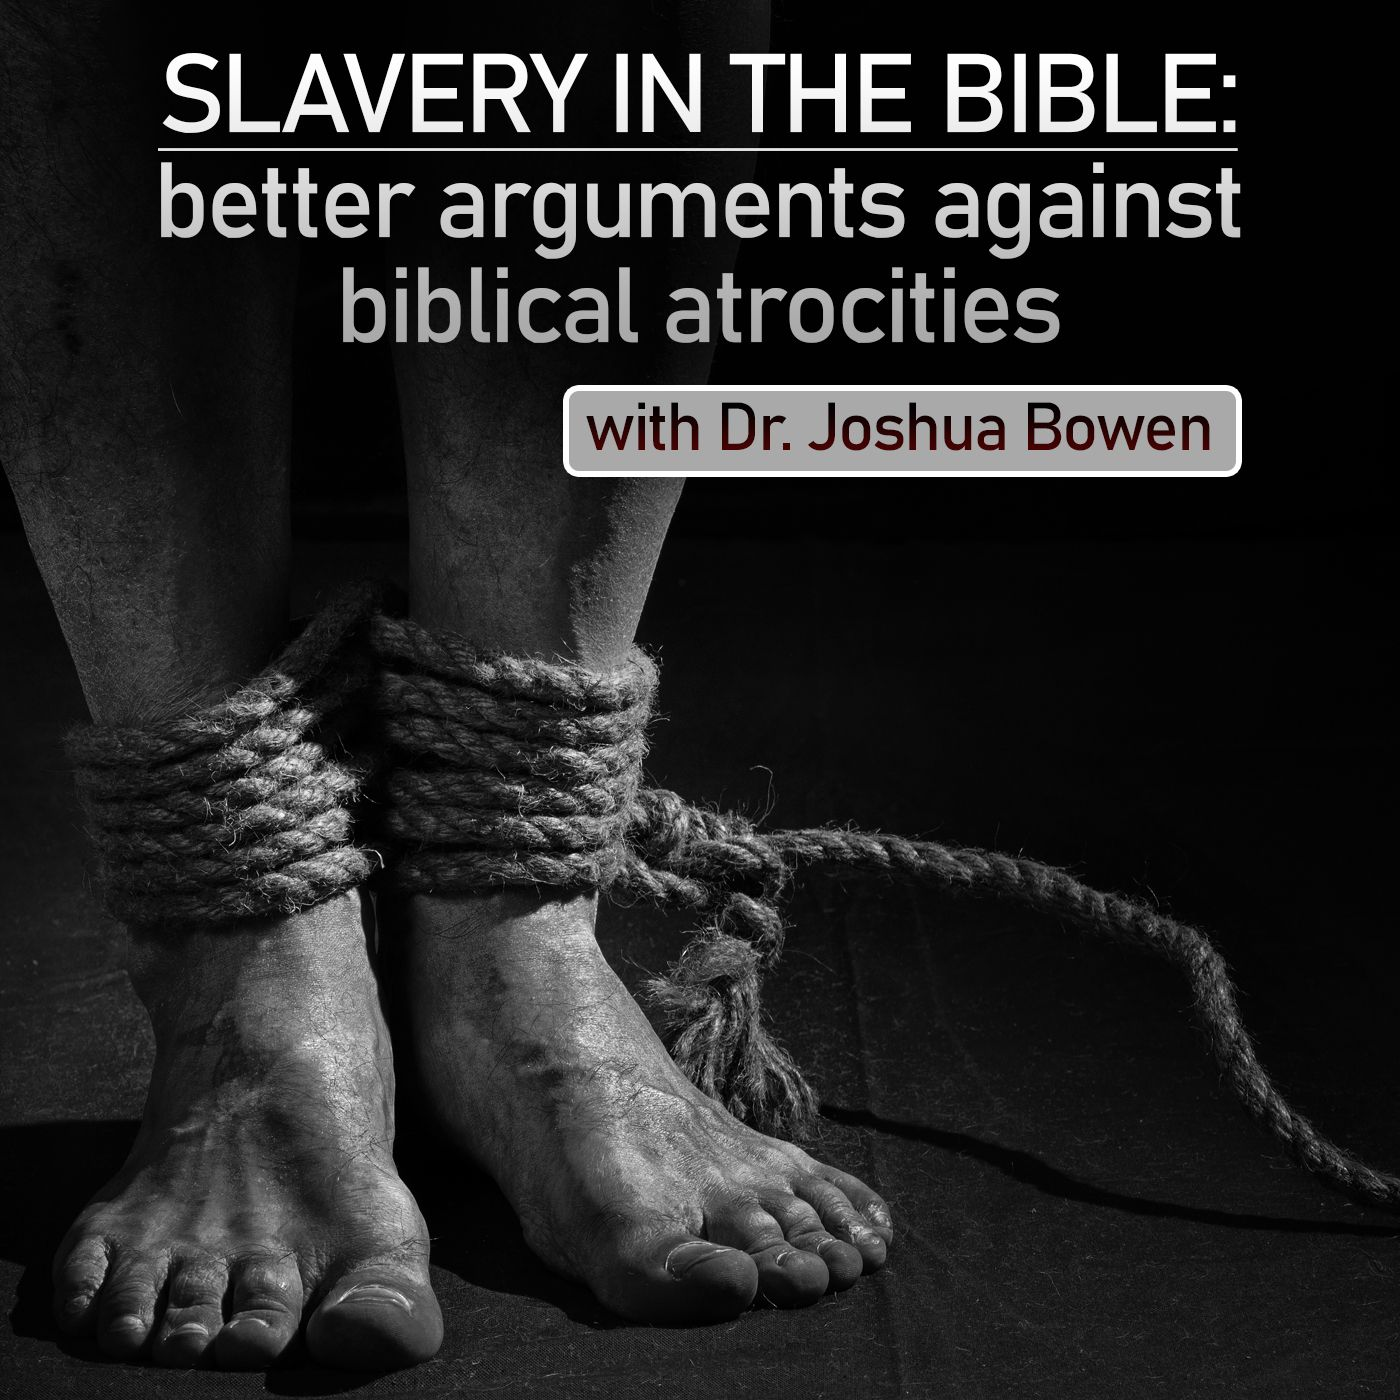 Other Disturbing Things in the Bible - Life After 40